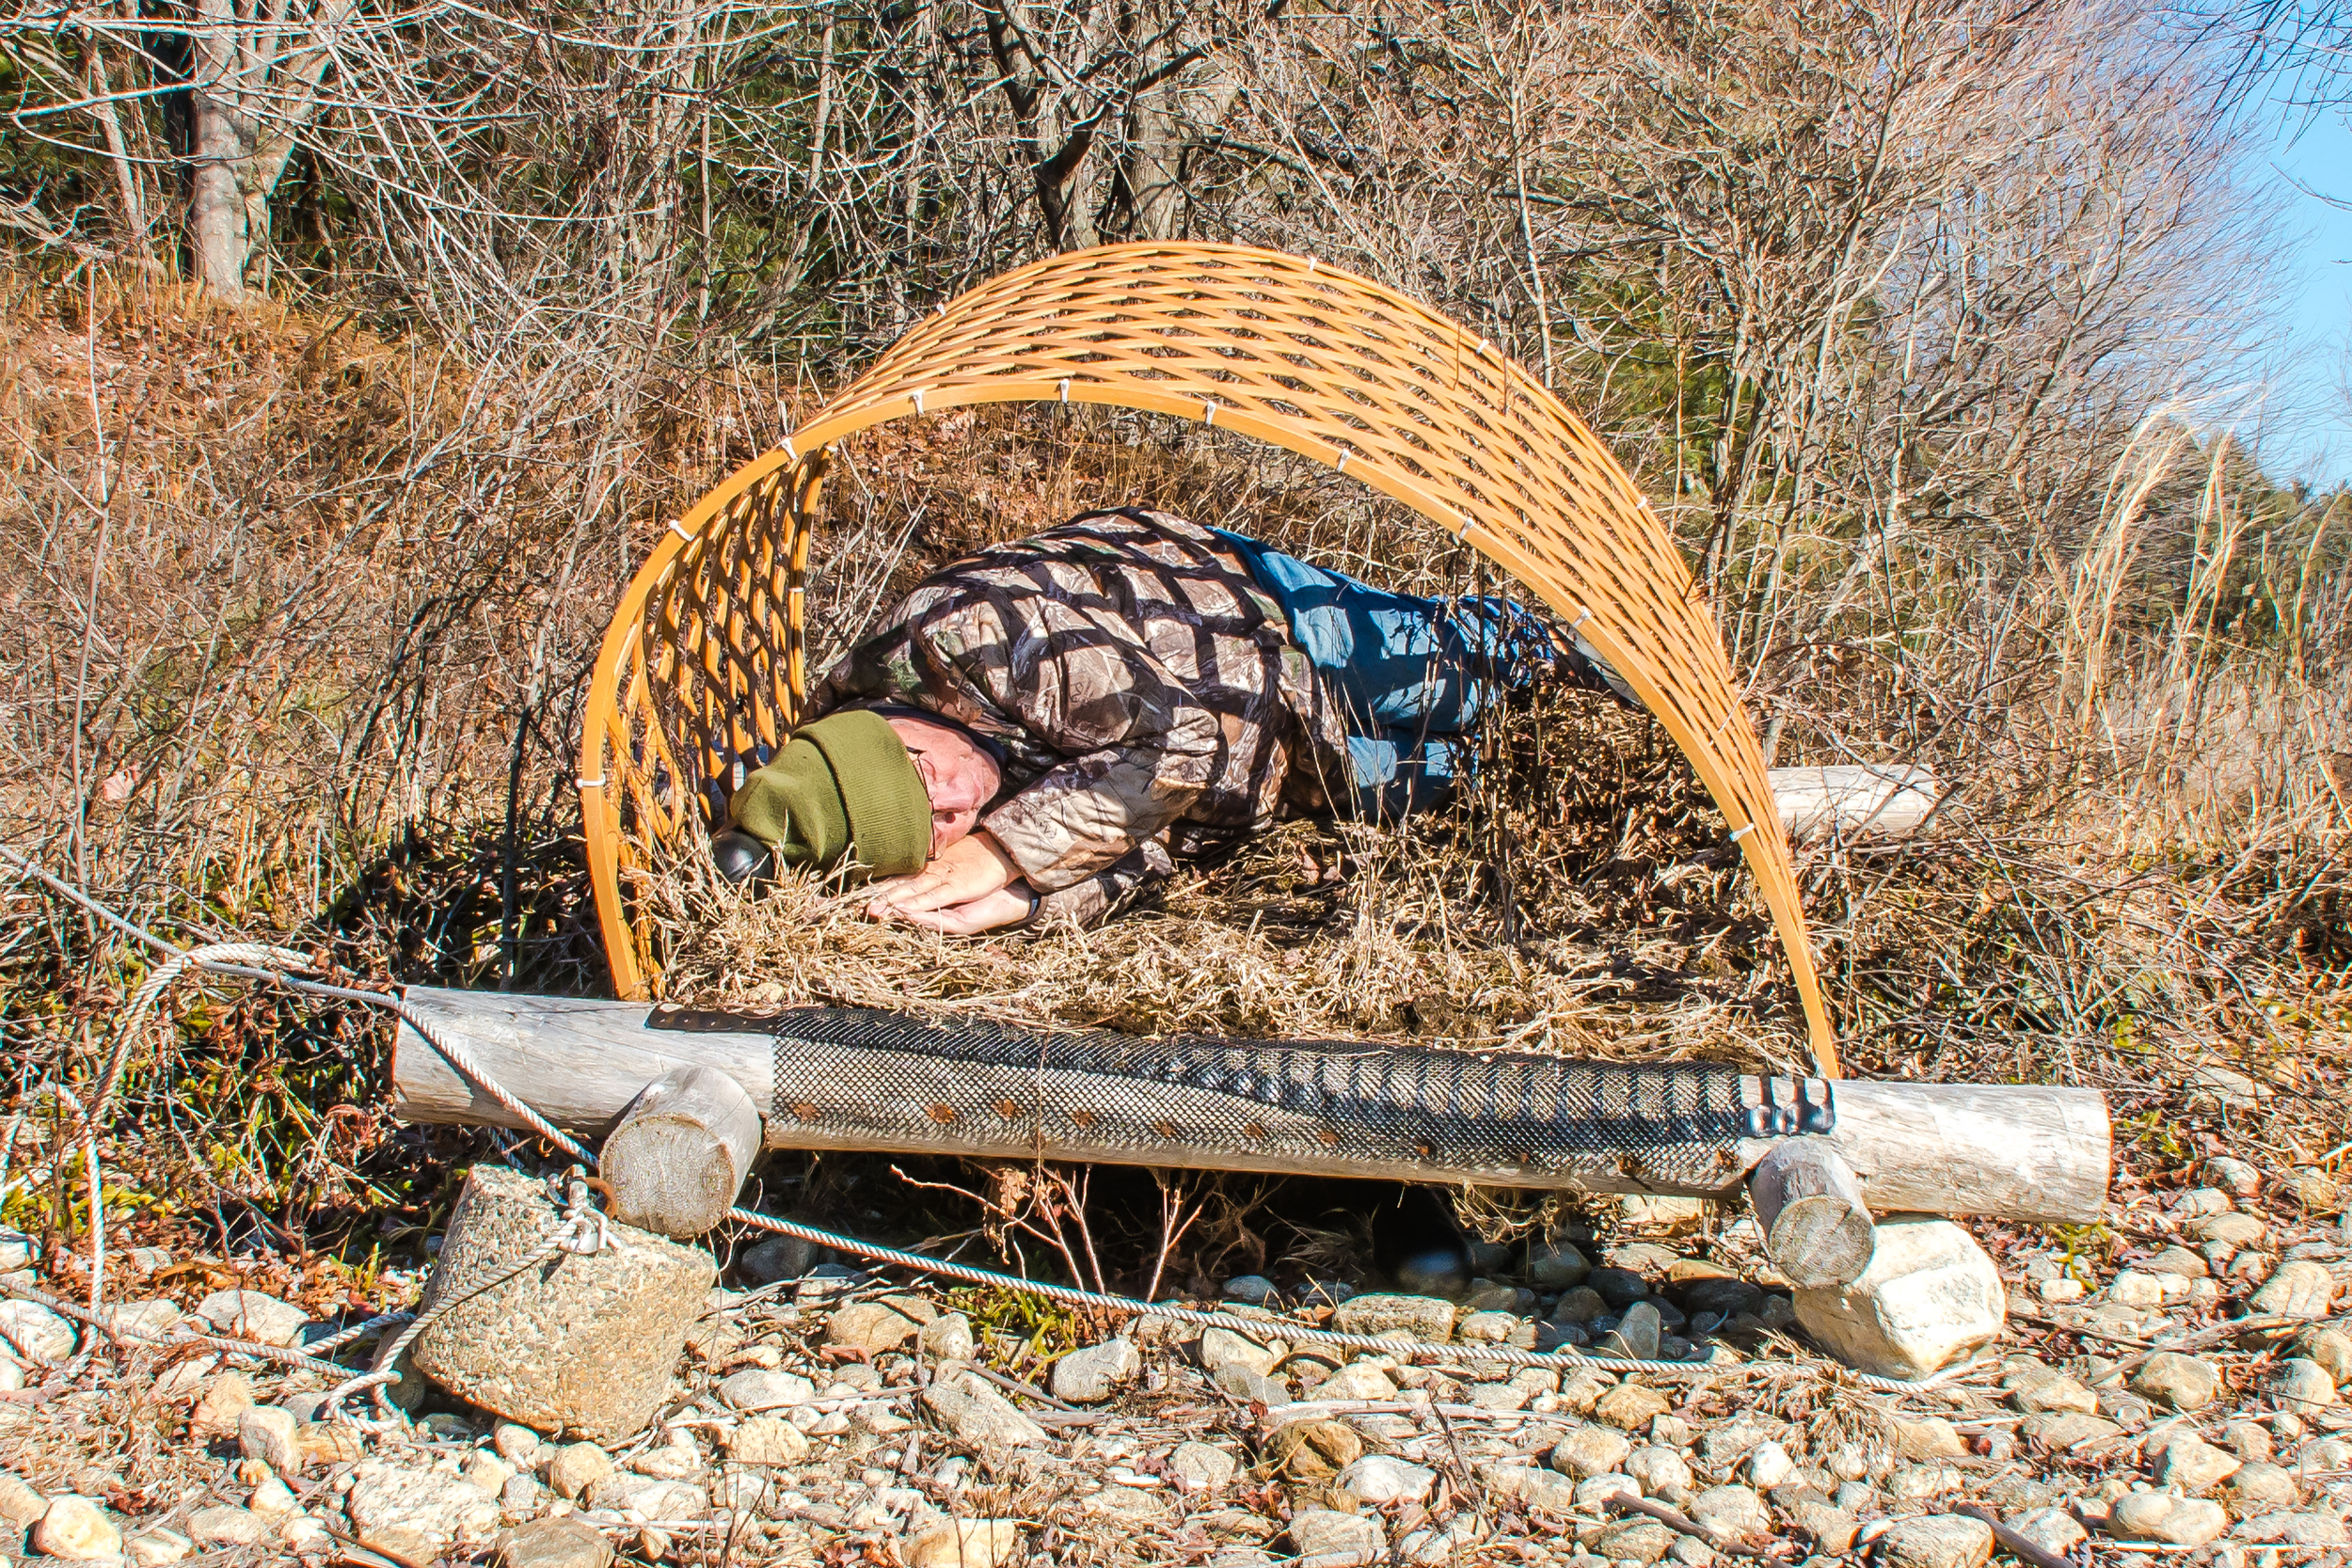 I personally make sure every loon raft is comfortable for our nesting loons the coming summer. Its a tough job and takes a tough man to complete the checklist of demands the loons require for a full nesting season. We launch about 8 rafts at Quabbin each year.Here I am in action in my breeding plumage testing one of the loon rafts last Friday. :)